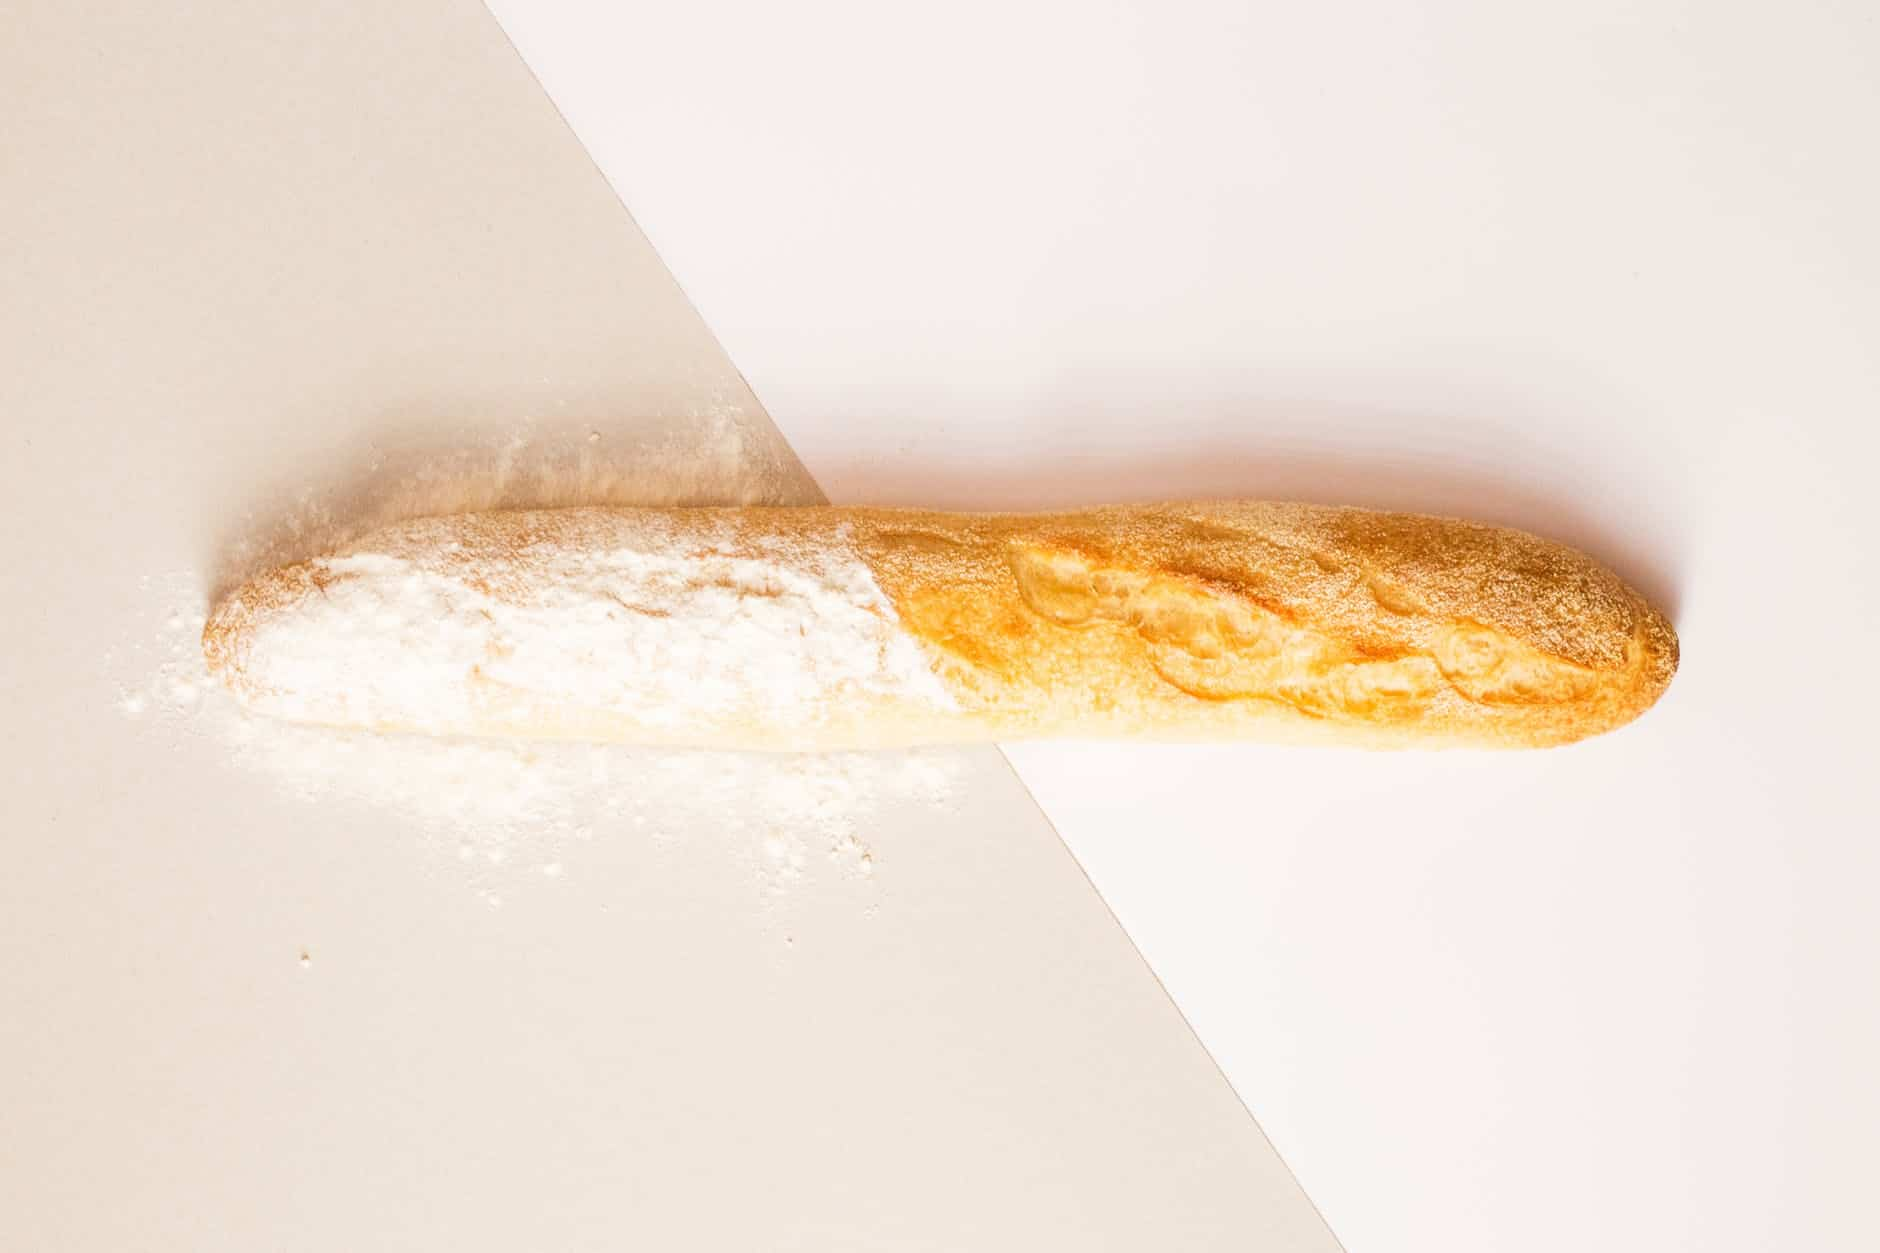 The Baguette: A Tasty French Delight